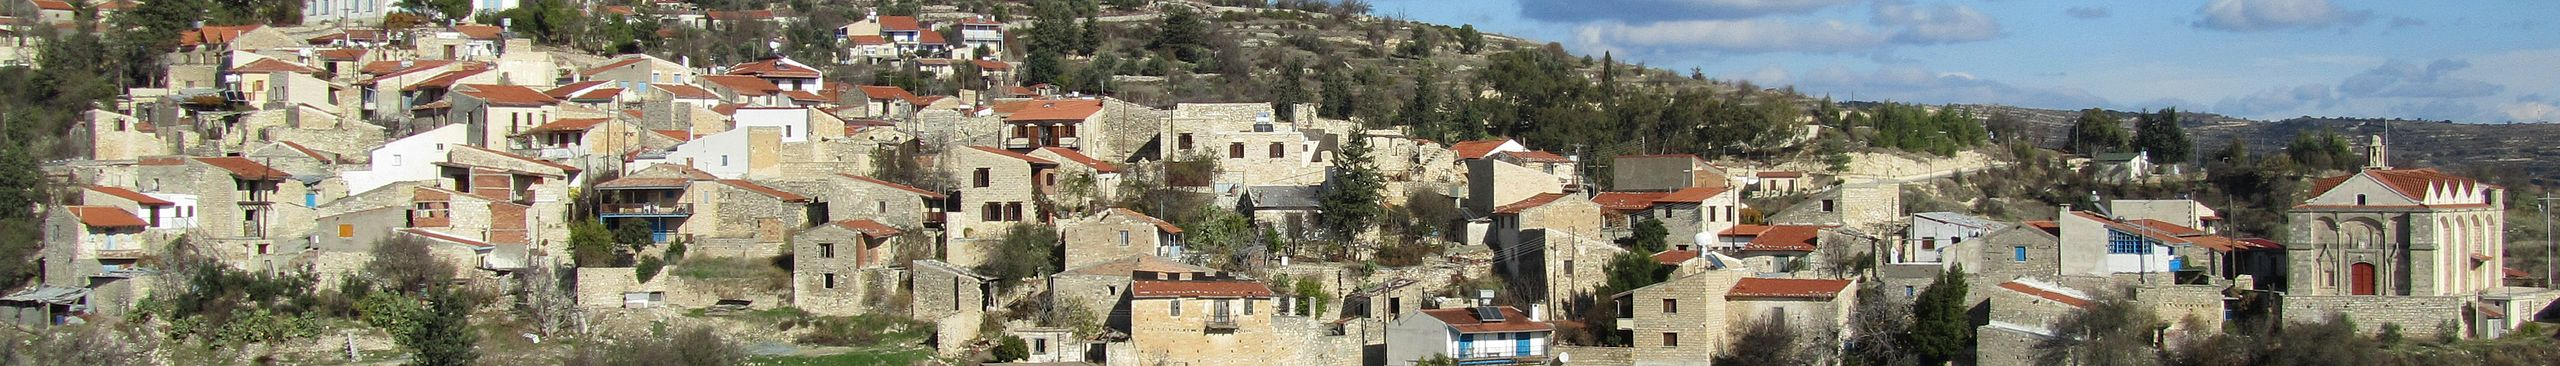 Cyprus     Travel guide at Wikivoyage Wikivoyage Cyprus